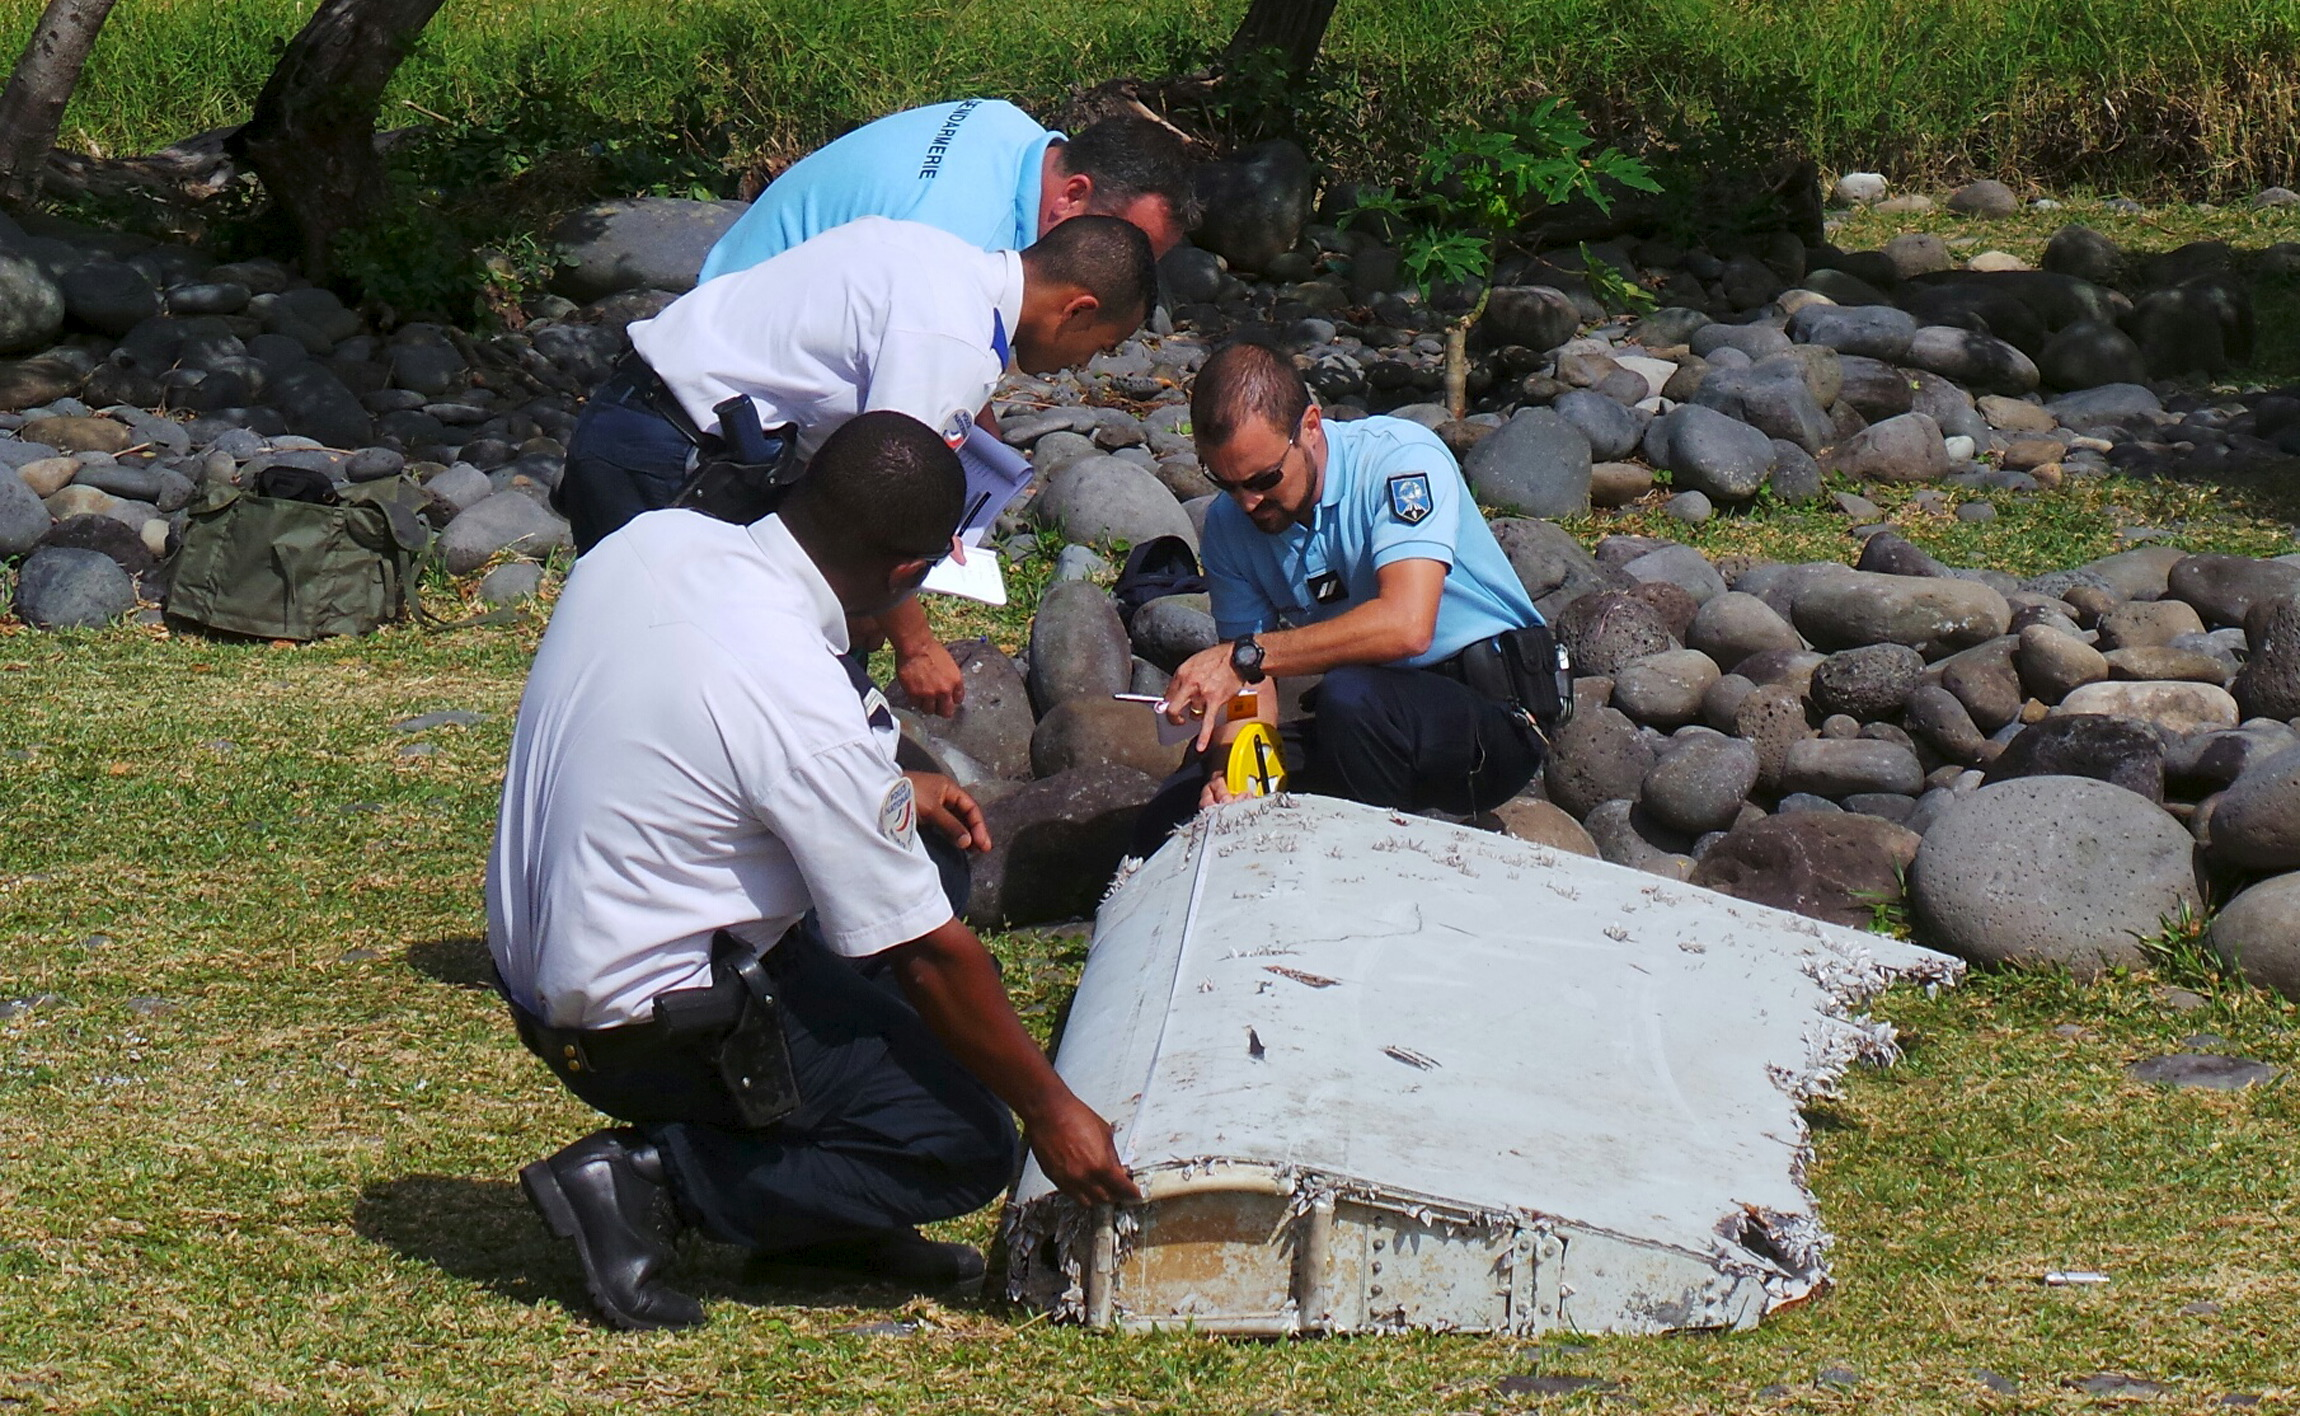 French gendarmes and police inspect a large piece of plane debris which was found on the beach in Saint-Andre, on the French Indian Ocean island of La Reunion, July 29, 2015. France's BEA air crash investigation agency said it was determining whether it came from Malaysia Airlines Flight MH370, which vanished last year. Picture taken July 29, 2015. Photo by Prisca Bigot/Reuters